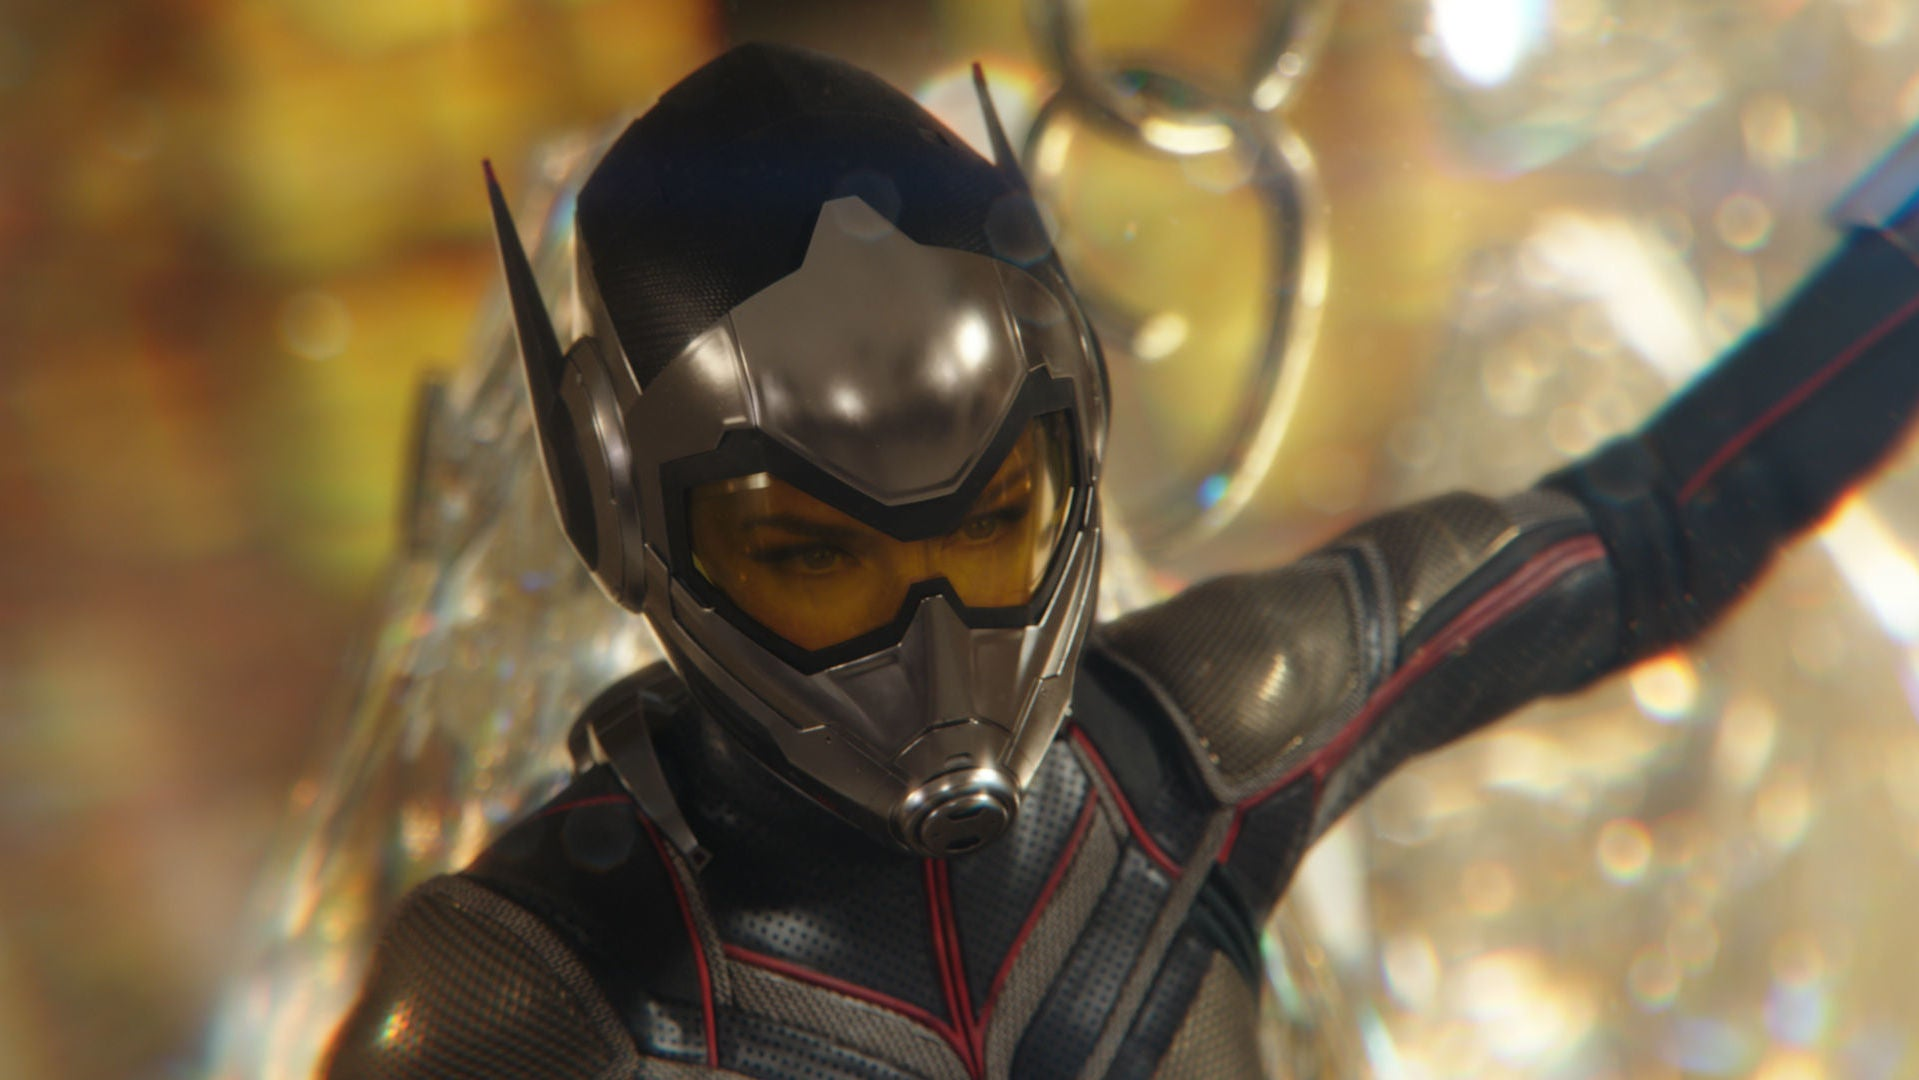 Check Out This Cool Concept Art Of The Wasp In Captain America: Civil War